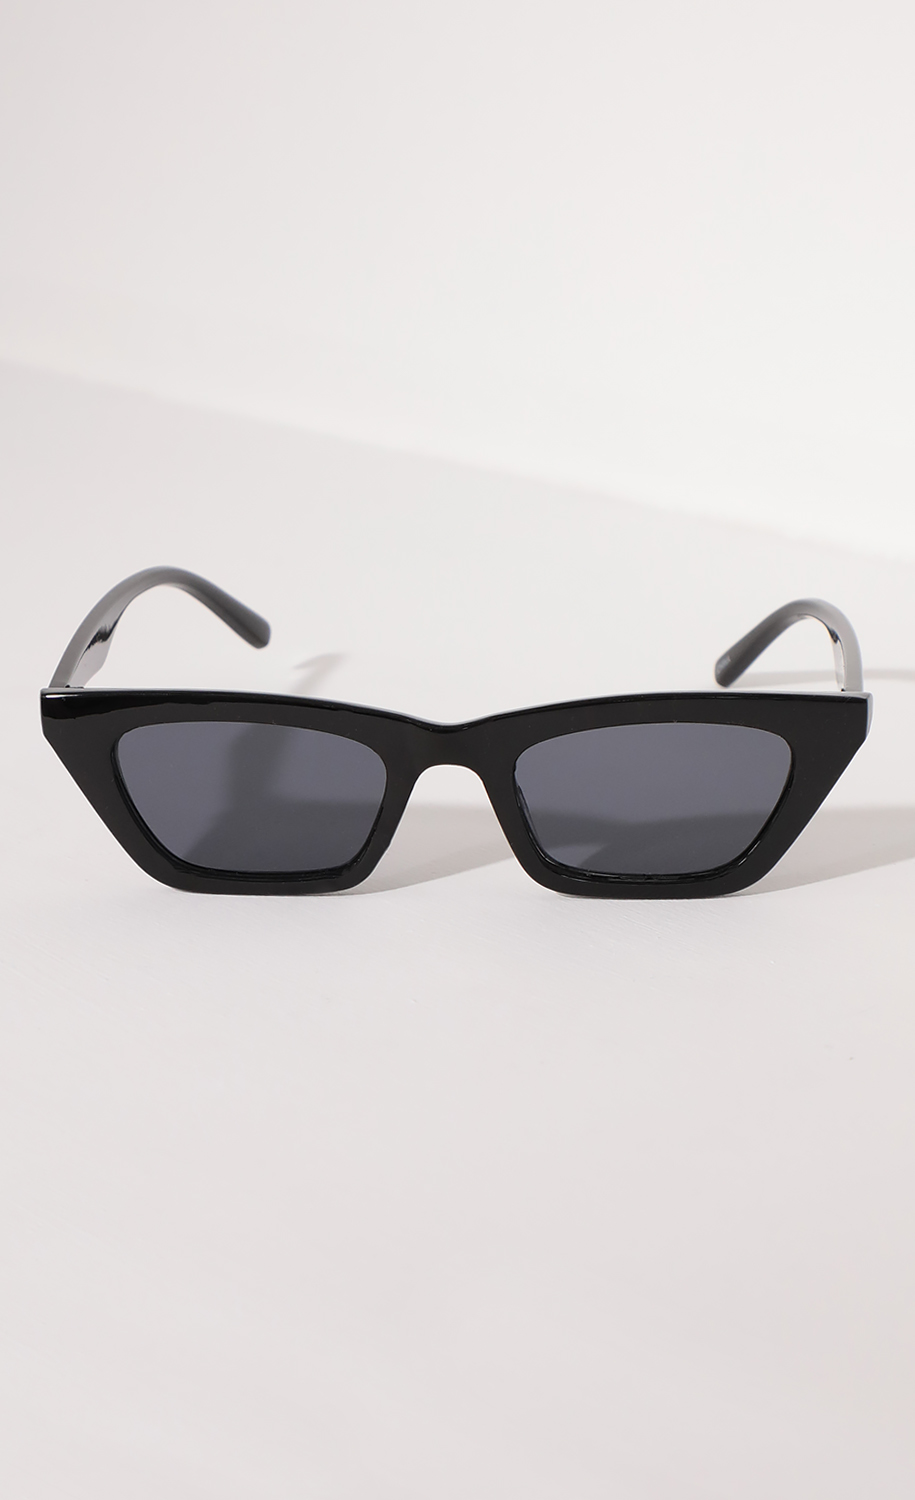 Skinny Cat Eye Sunglasses in Black